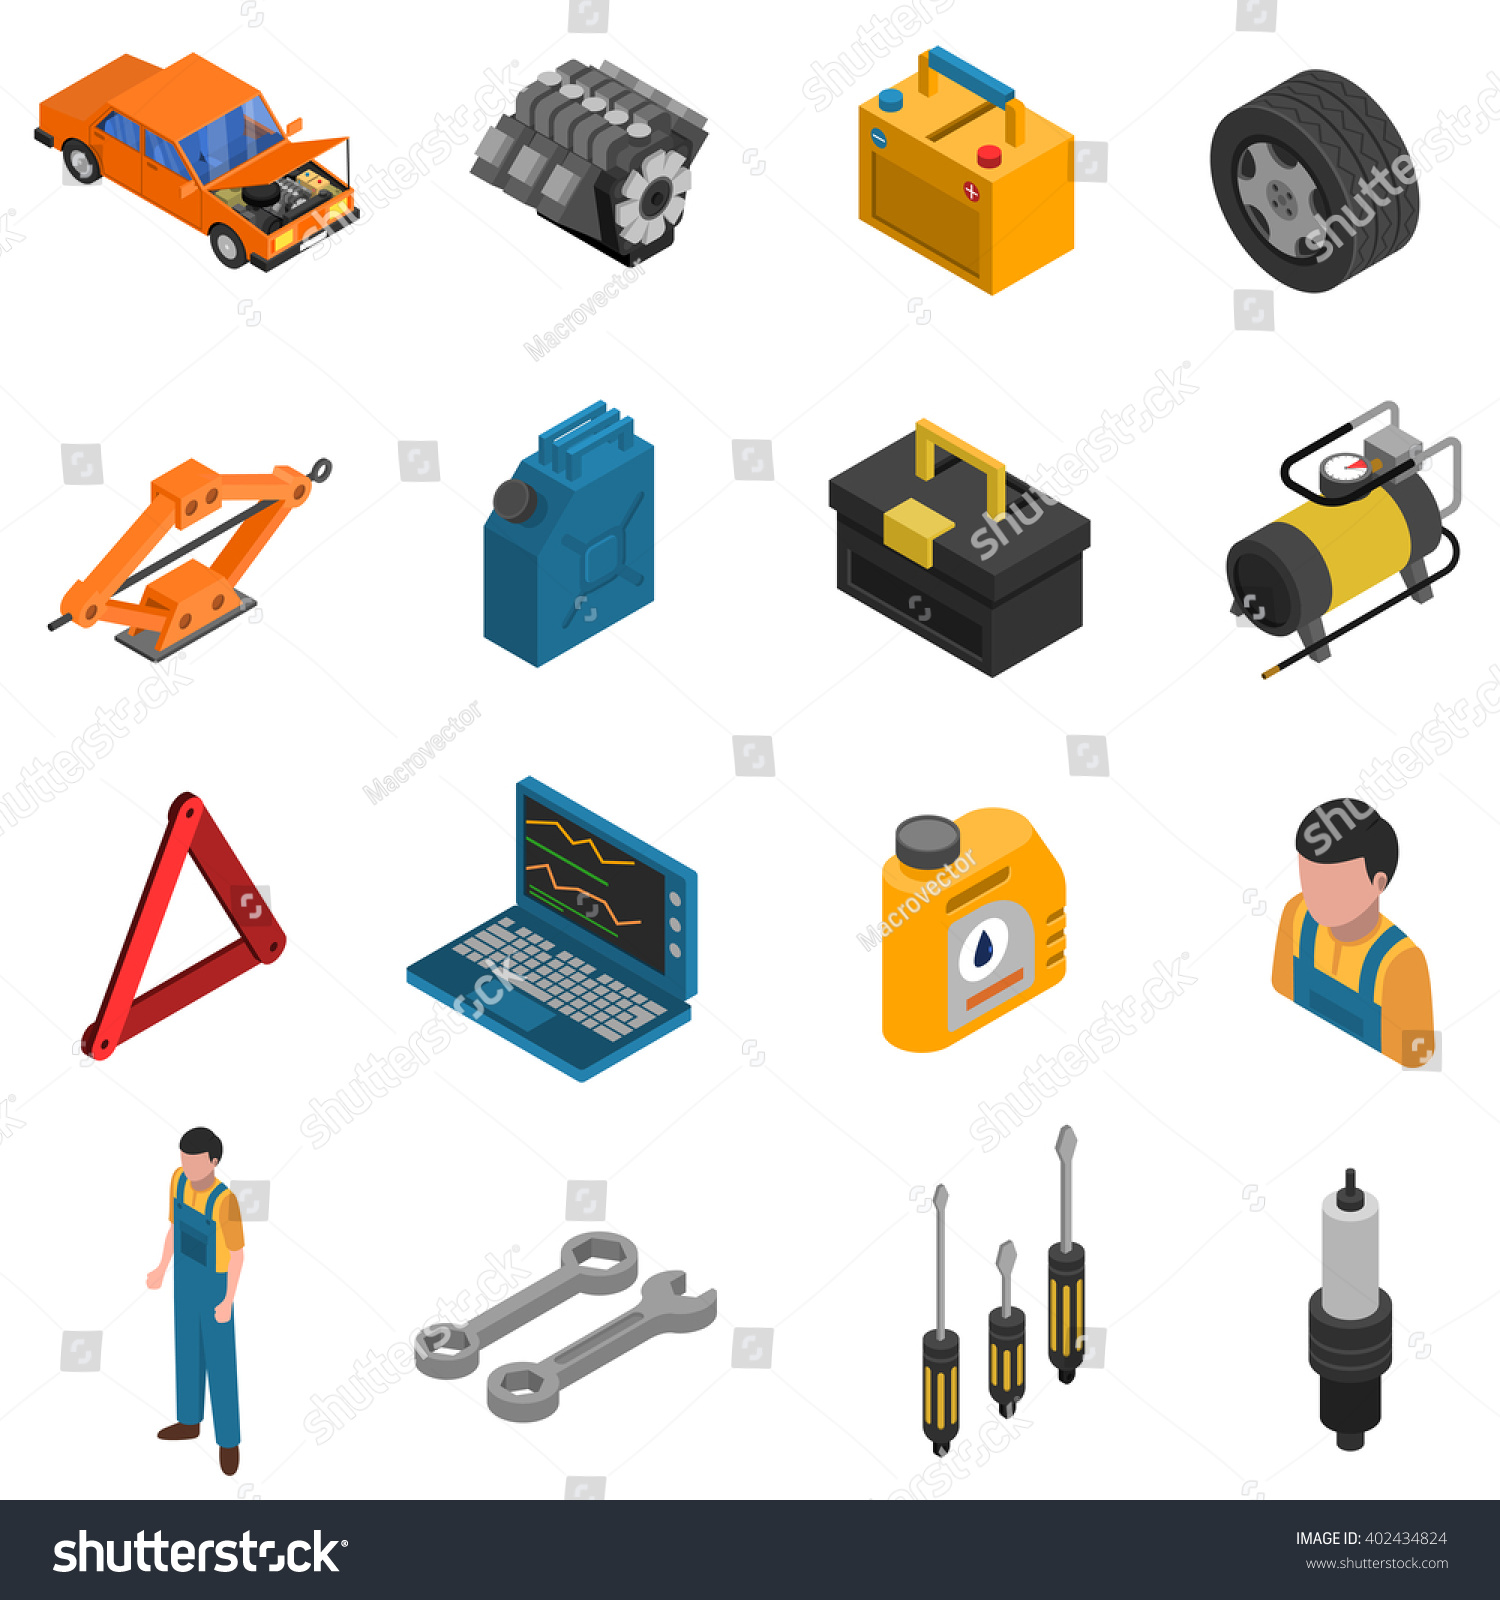 Tractor Parts Icon : Isometric isolated icon set colorful elements เวกเตอร์